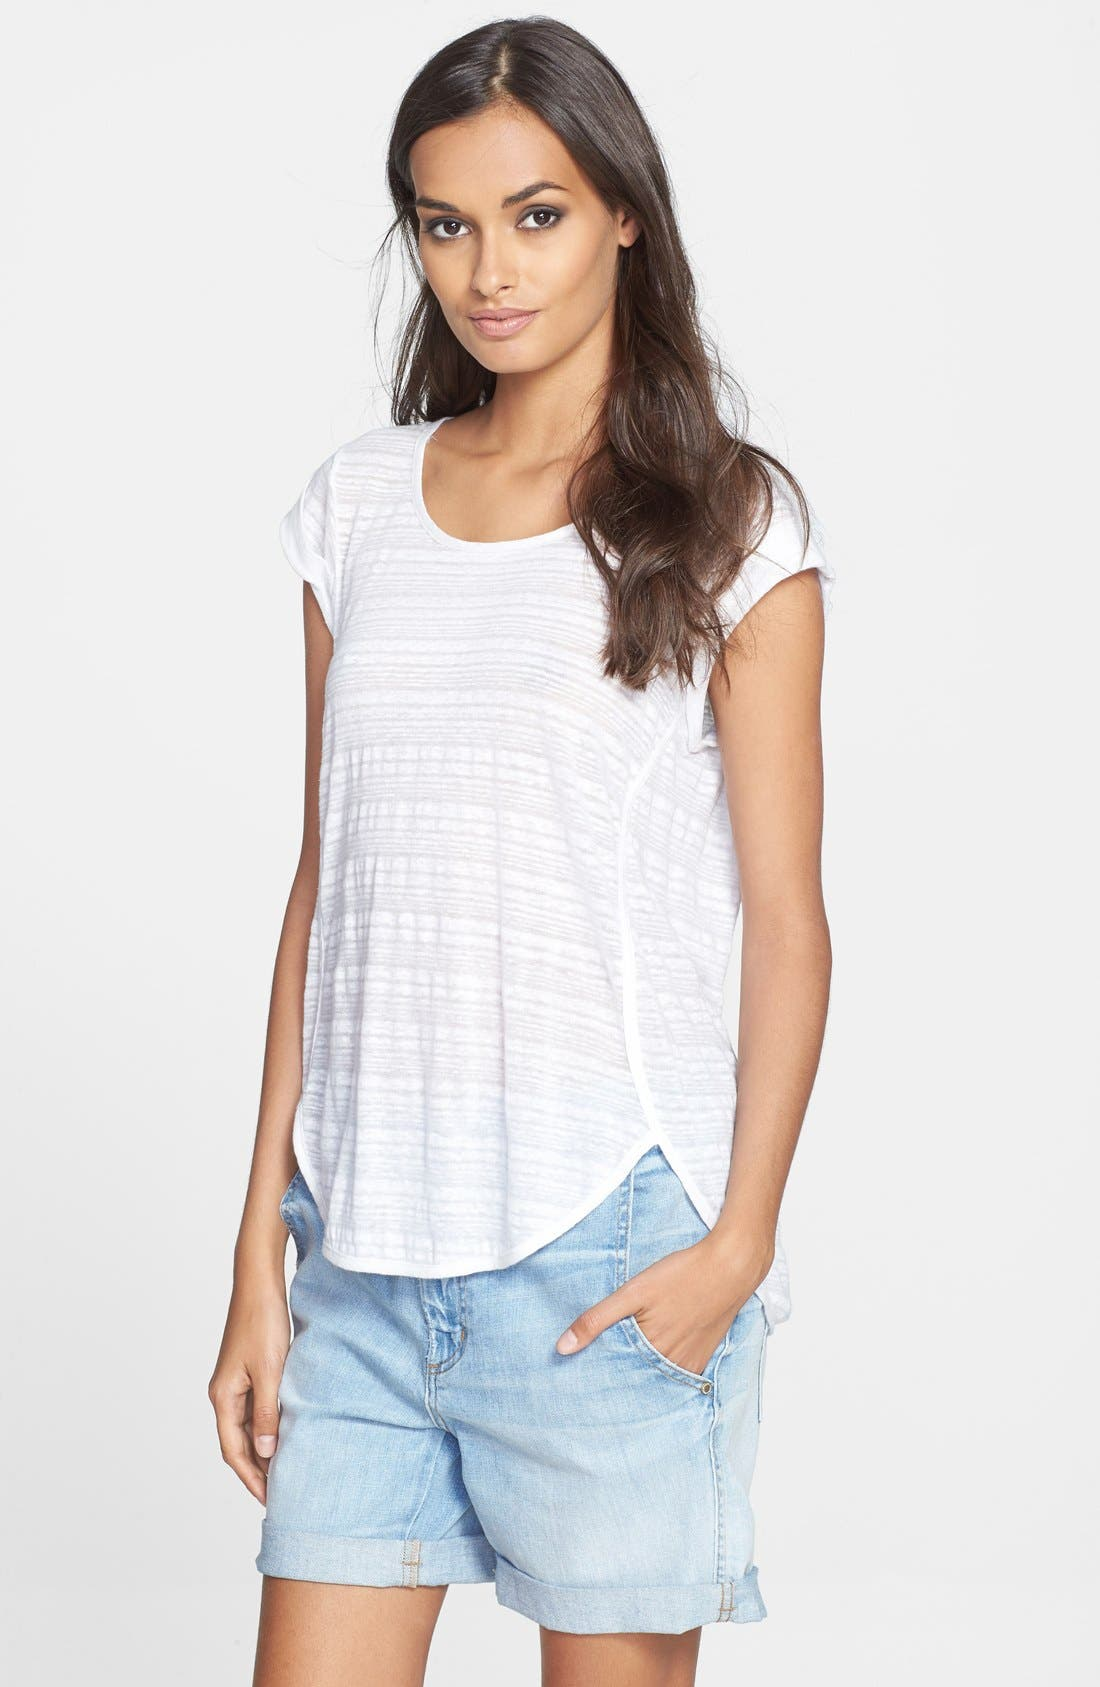 Main Image - MARC BY MARC JACOBS 'Eloise' Ombré Jersey Muscle Tee